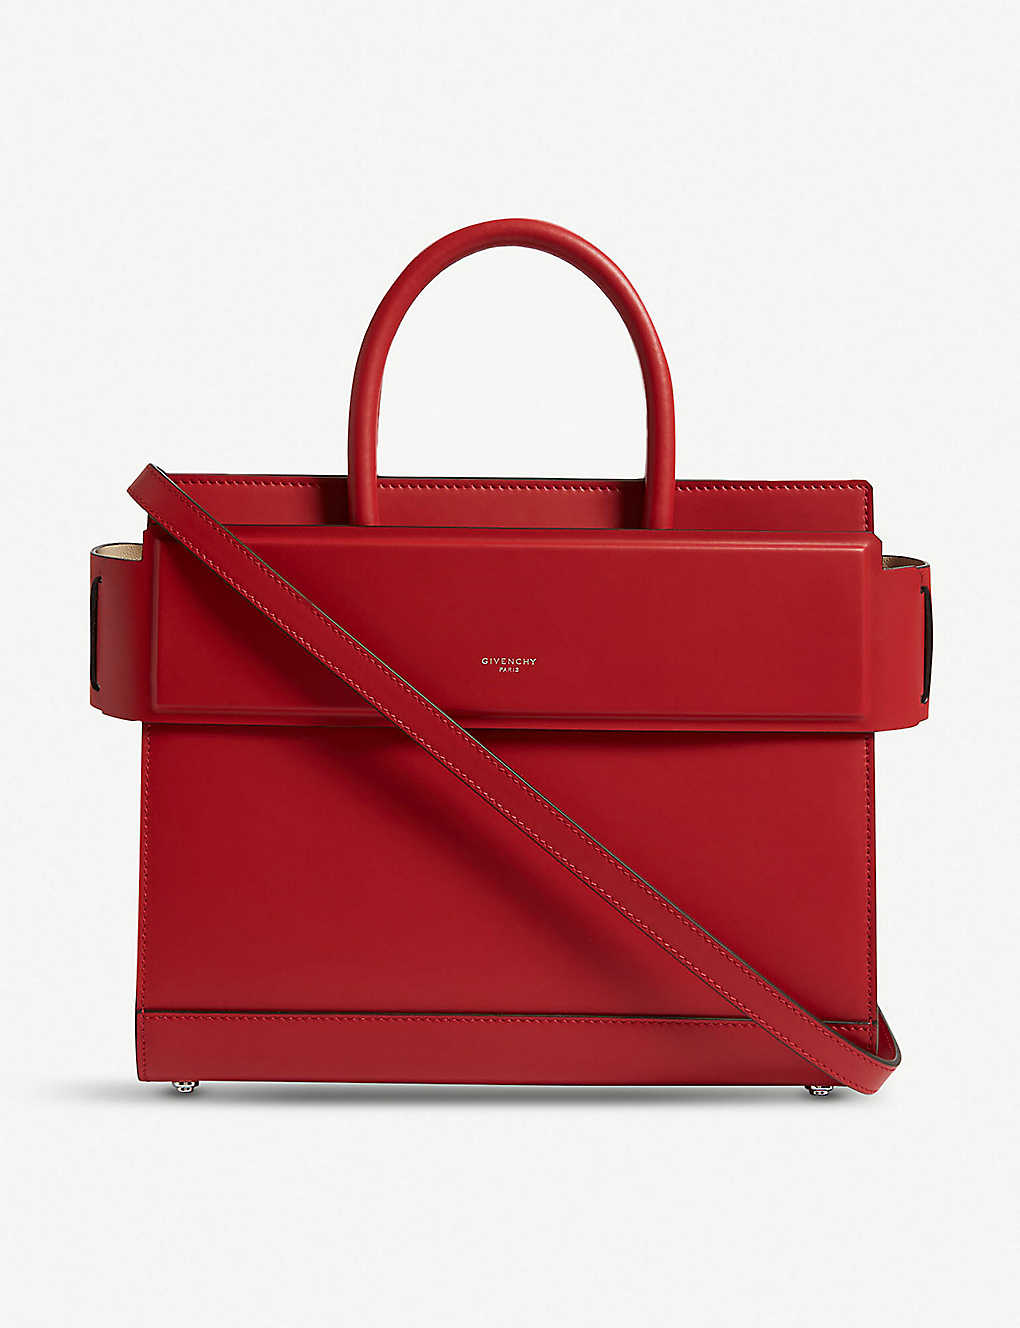 94875863eac2 GIVENCHY - Horizon small leather shoulder bag